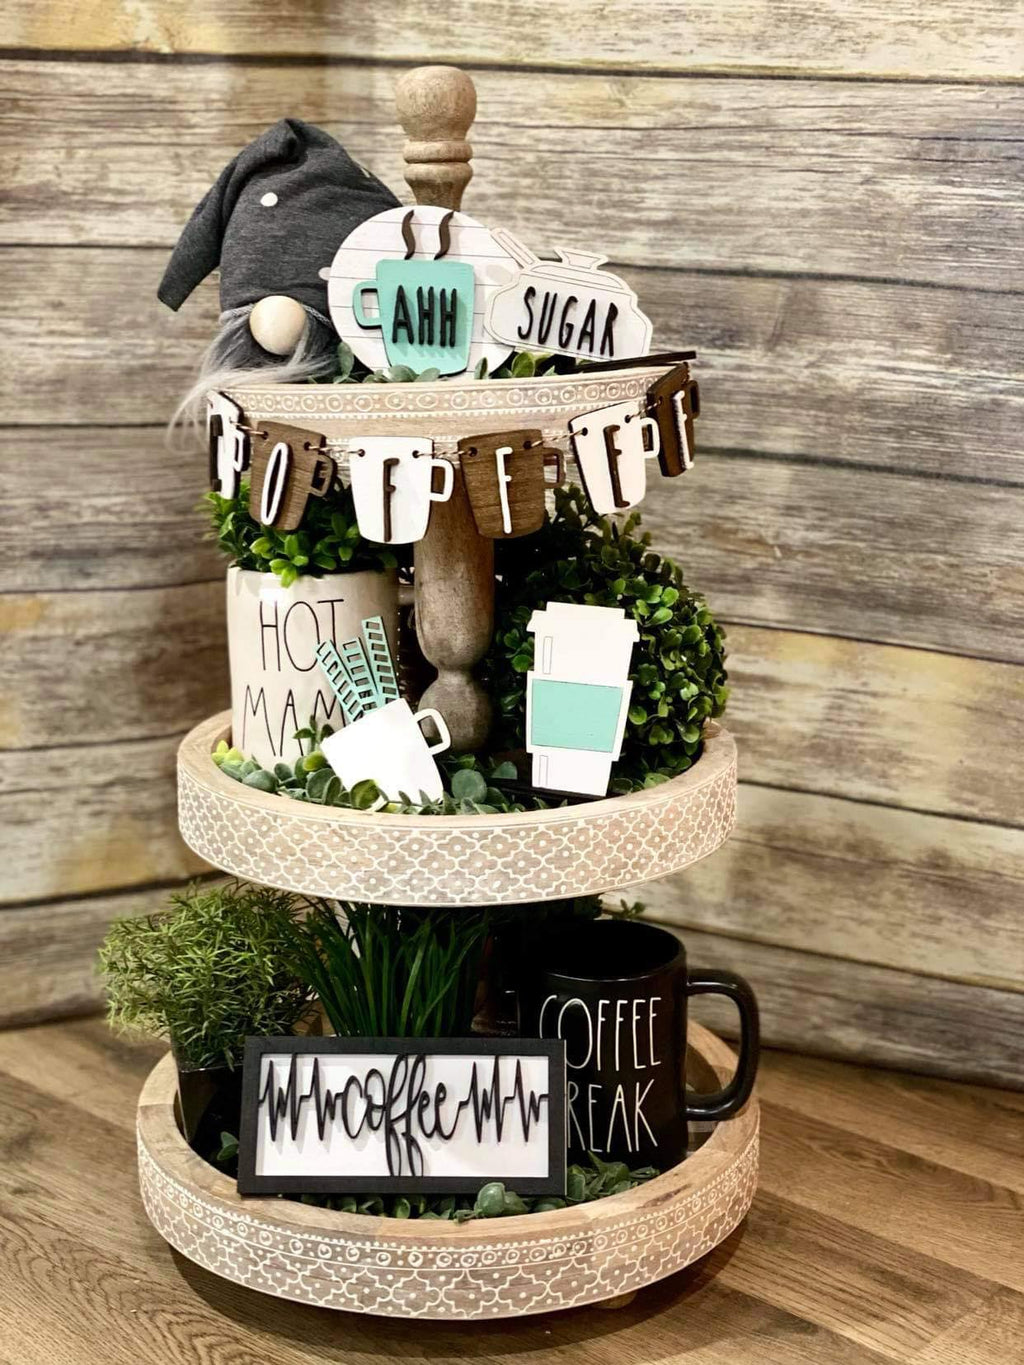 3D Tiered Tray Decor - Coffee